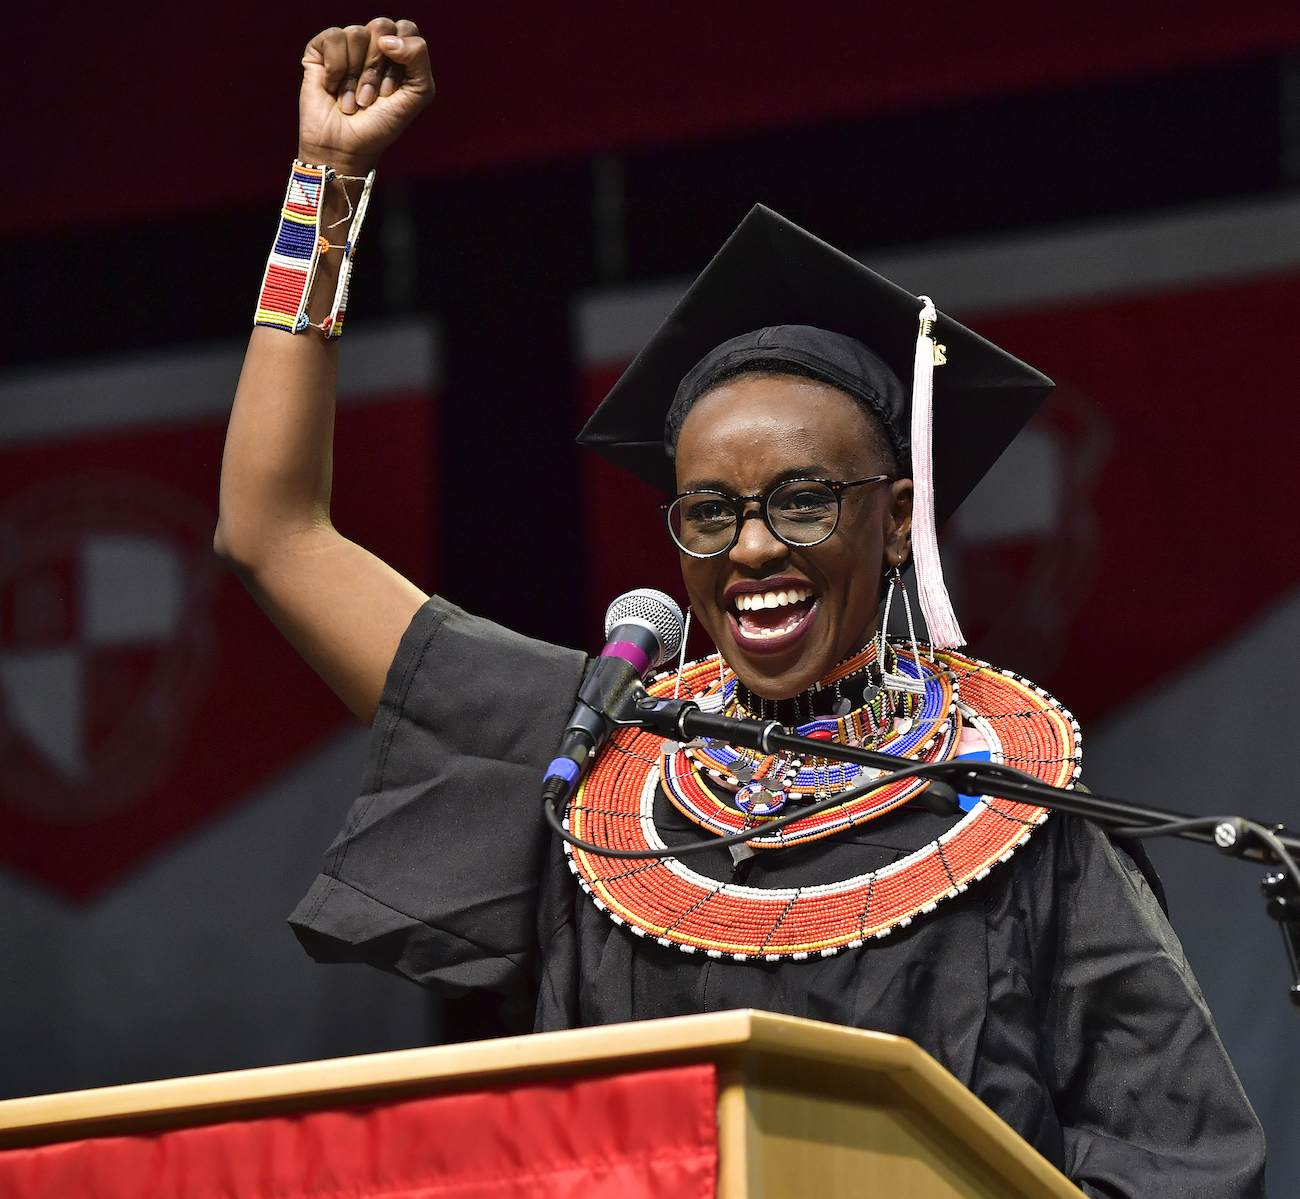 Berklee student Beth Njoki Mwangi of Kenya delivers the student address at the Berklee College of Music 2018 Commencement day ceremony. | Paul Marotta/Getty Images